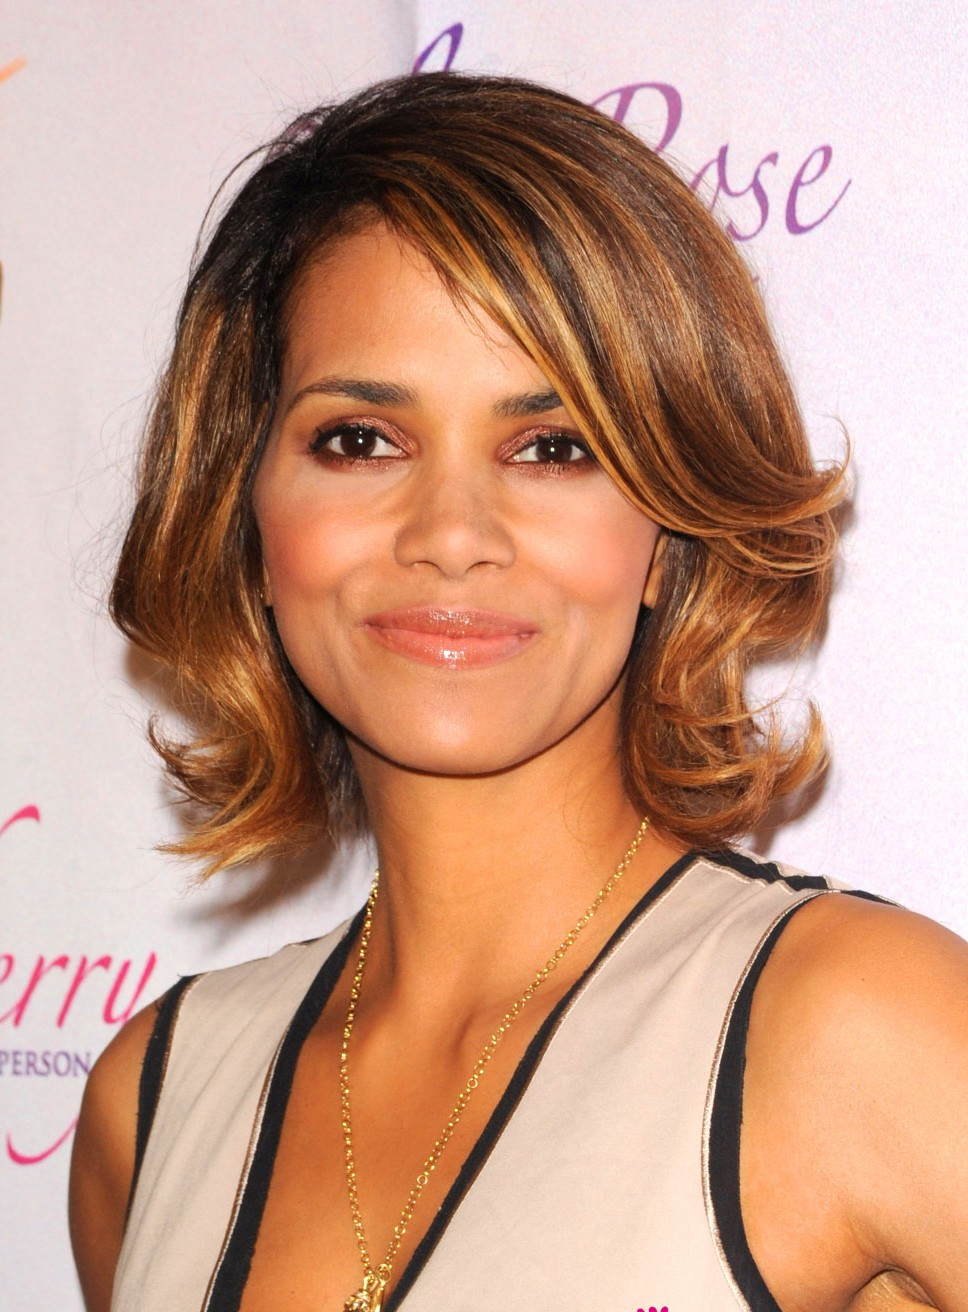 Halle Berry Medium Wavy Wigs, celebrity wig 2017 Halle Berry